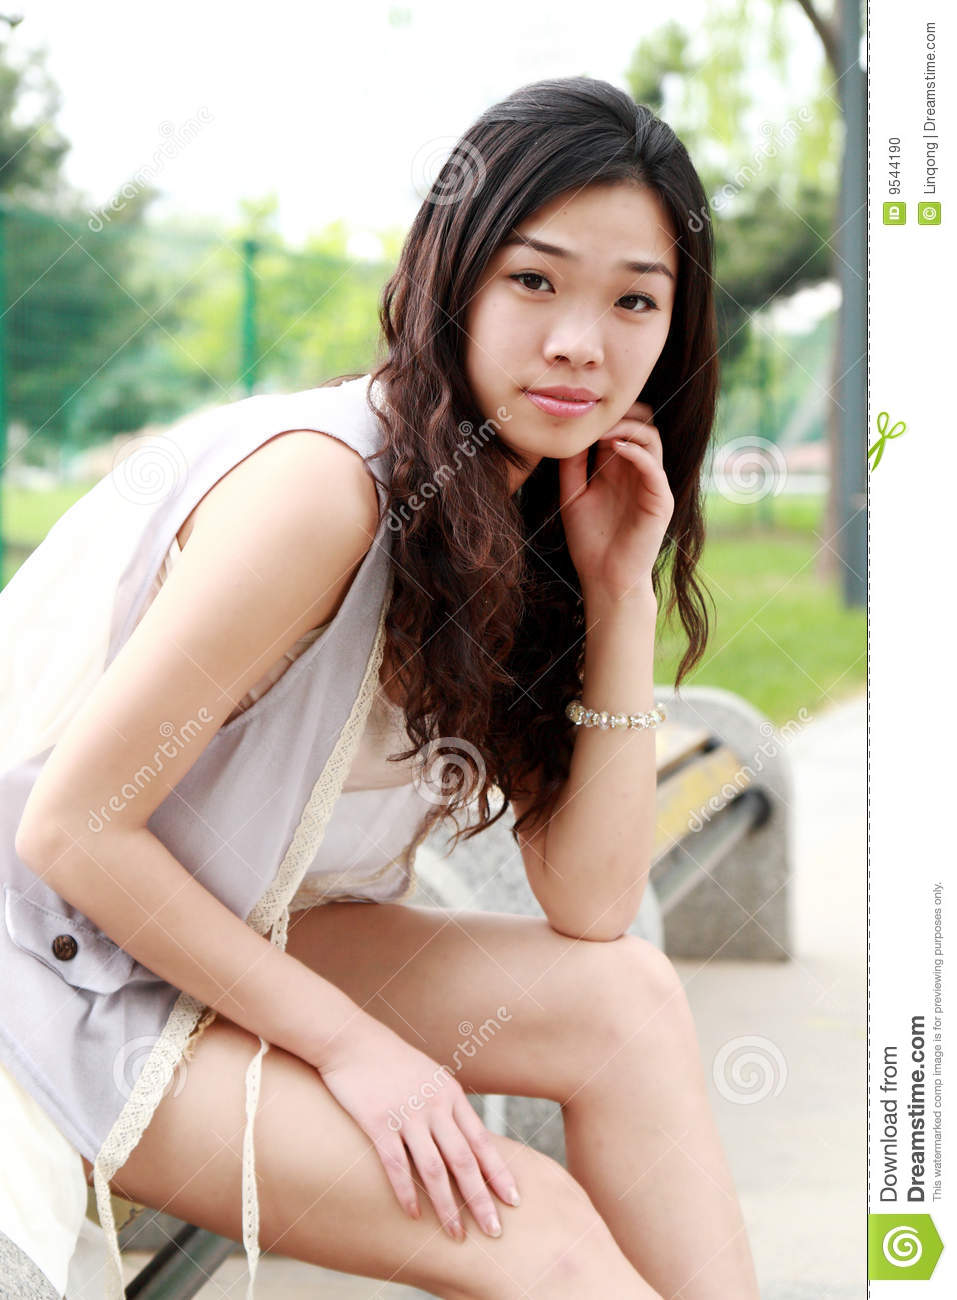 Asian girl iphone-3140